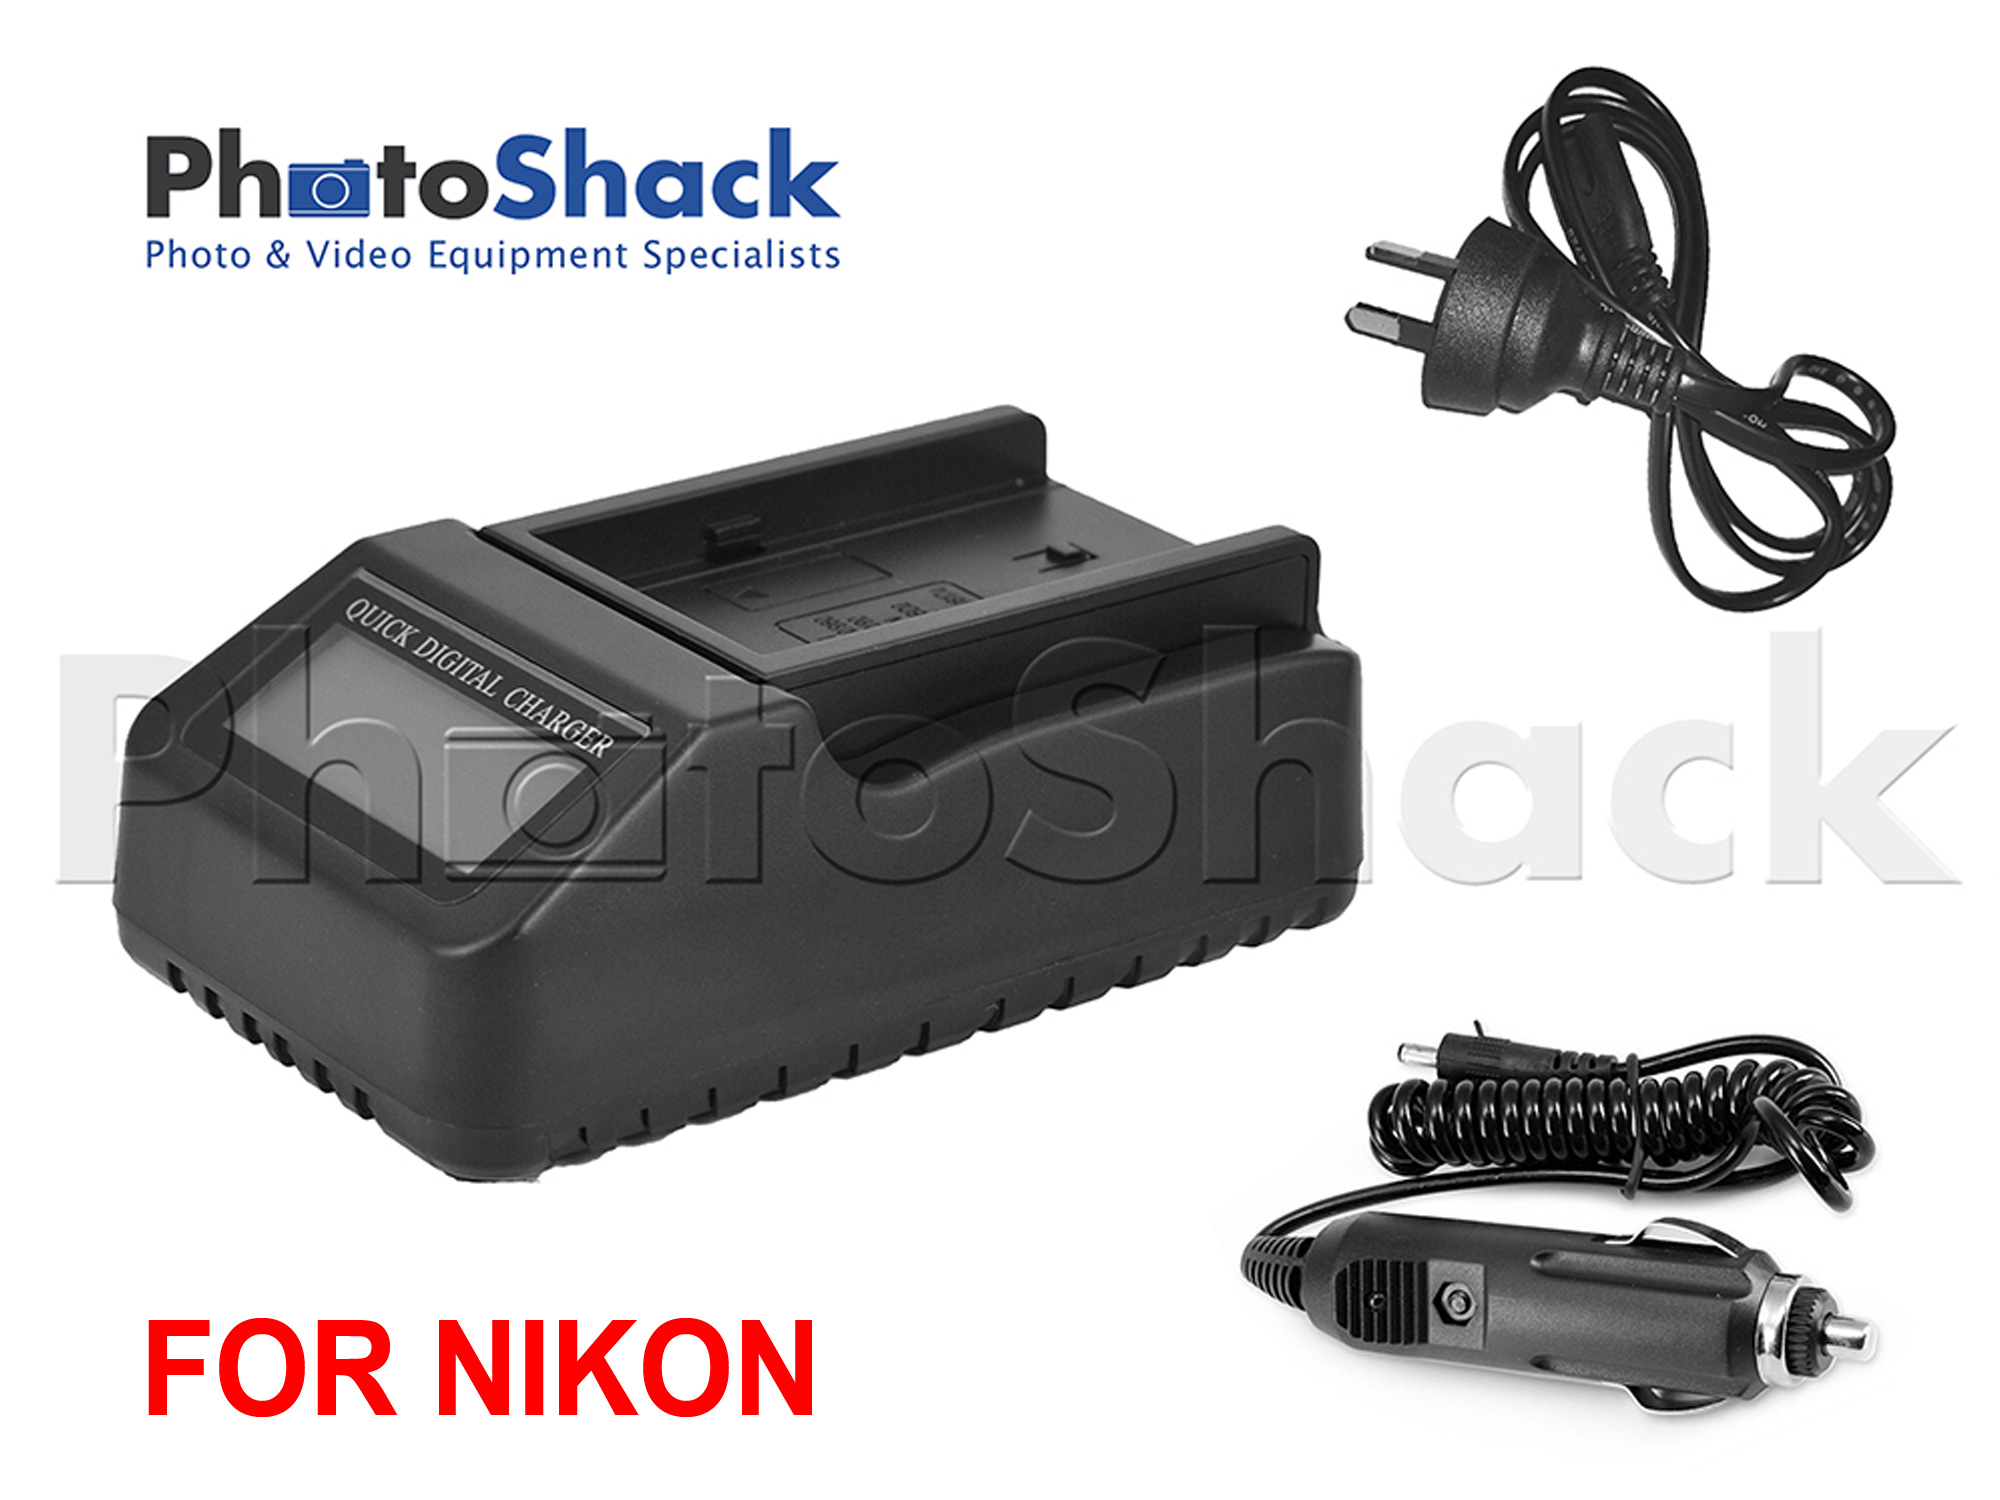 Multifunction Digital Charger with LCD Display For Nikon